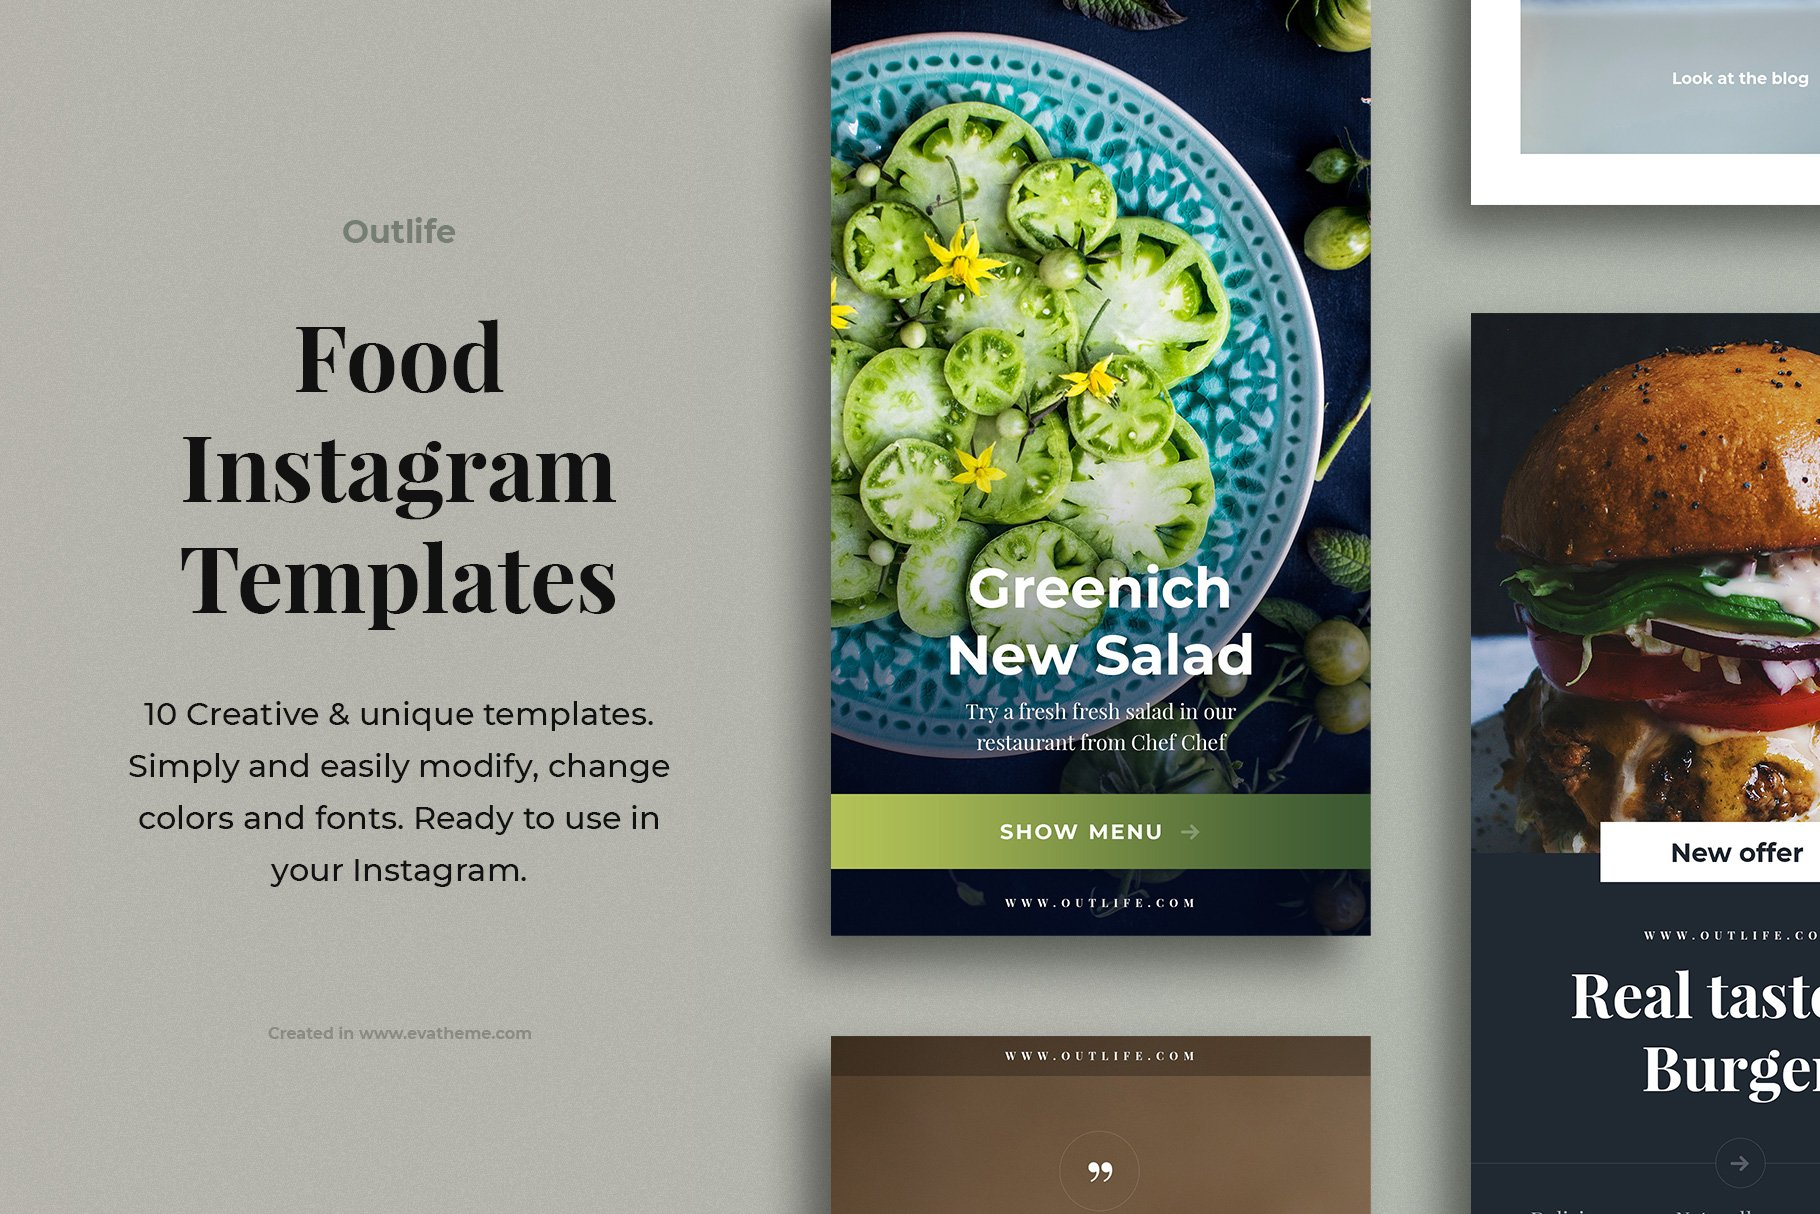 Outlife Food Instagram Templates example image 1